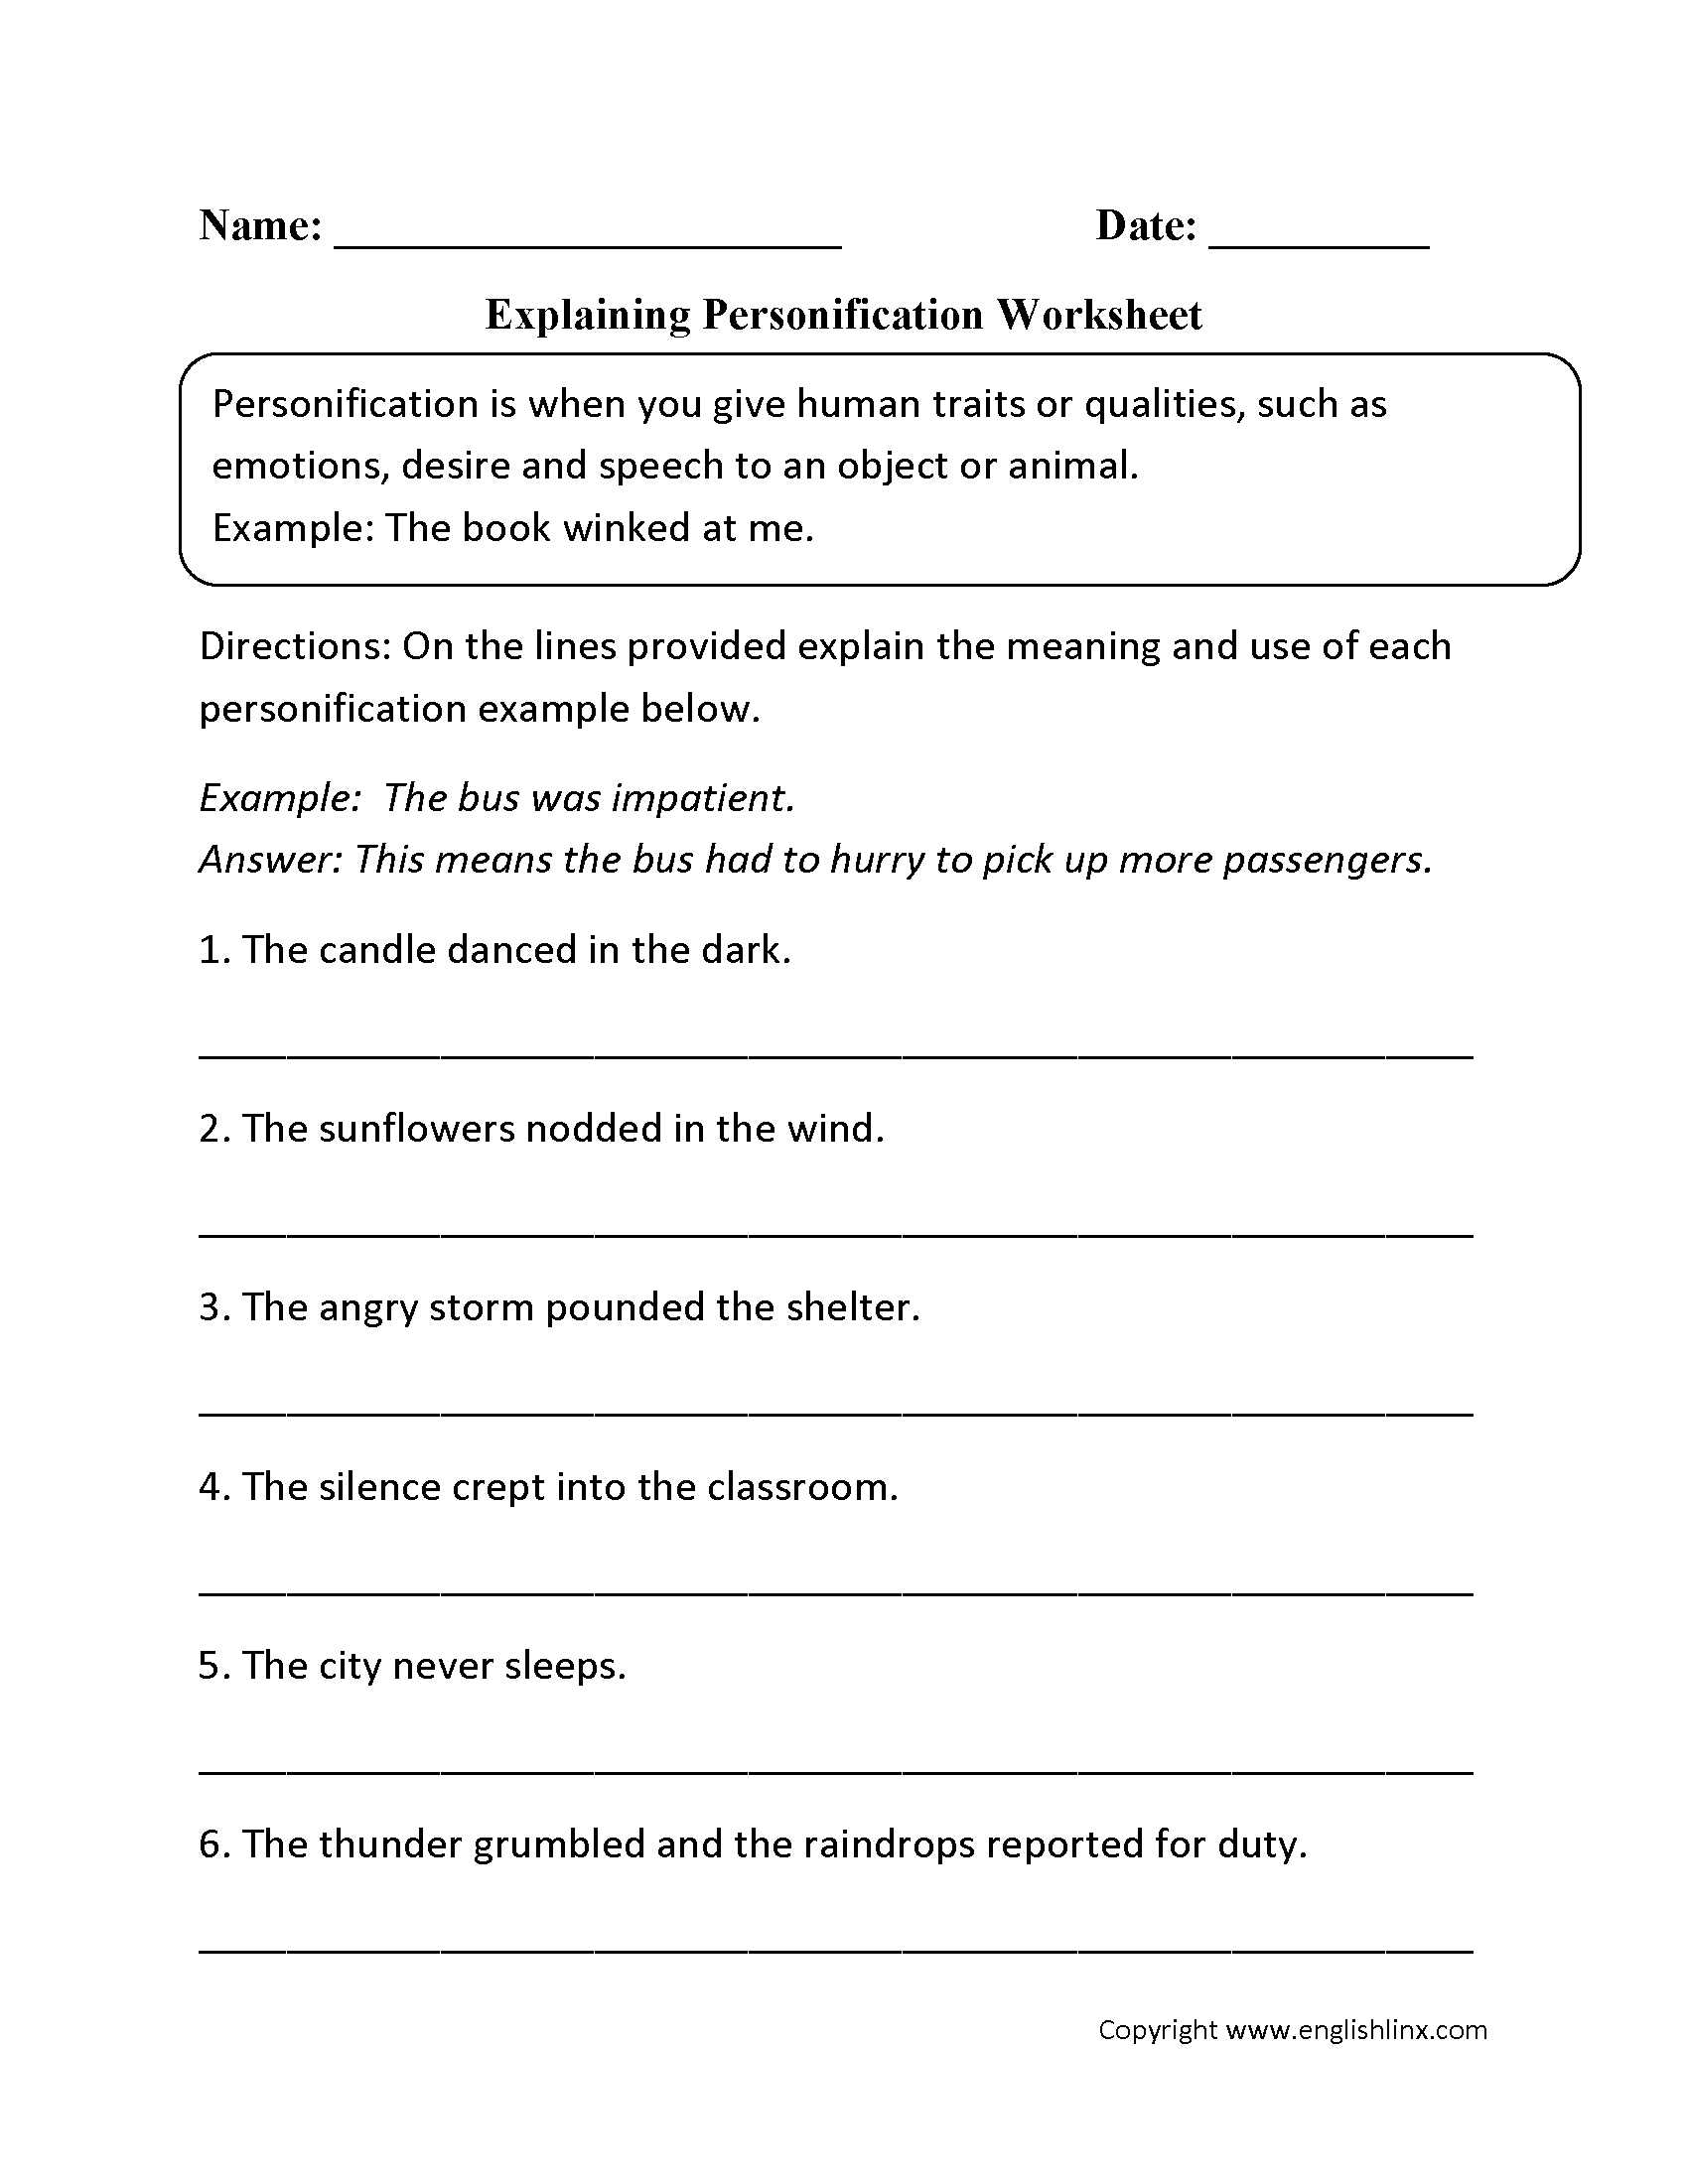 Worksheets Personification Worksheets explaining personification worksheet learning pinterest worksheets and teaching